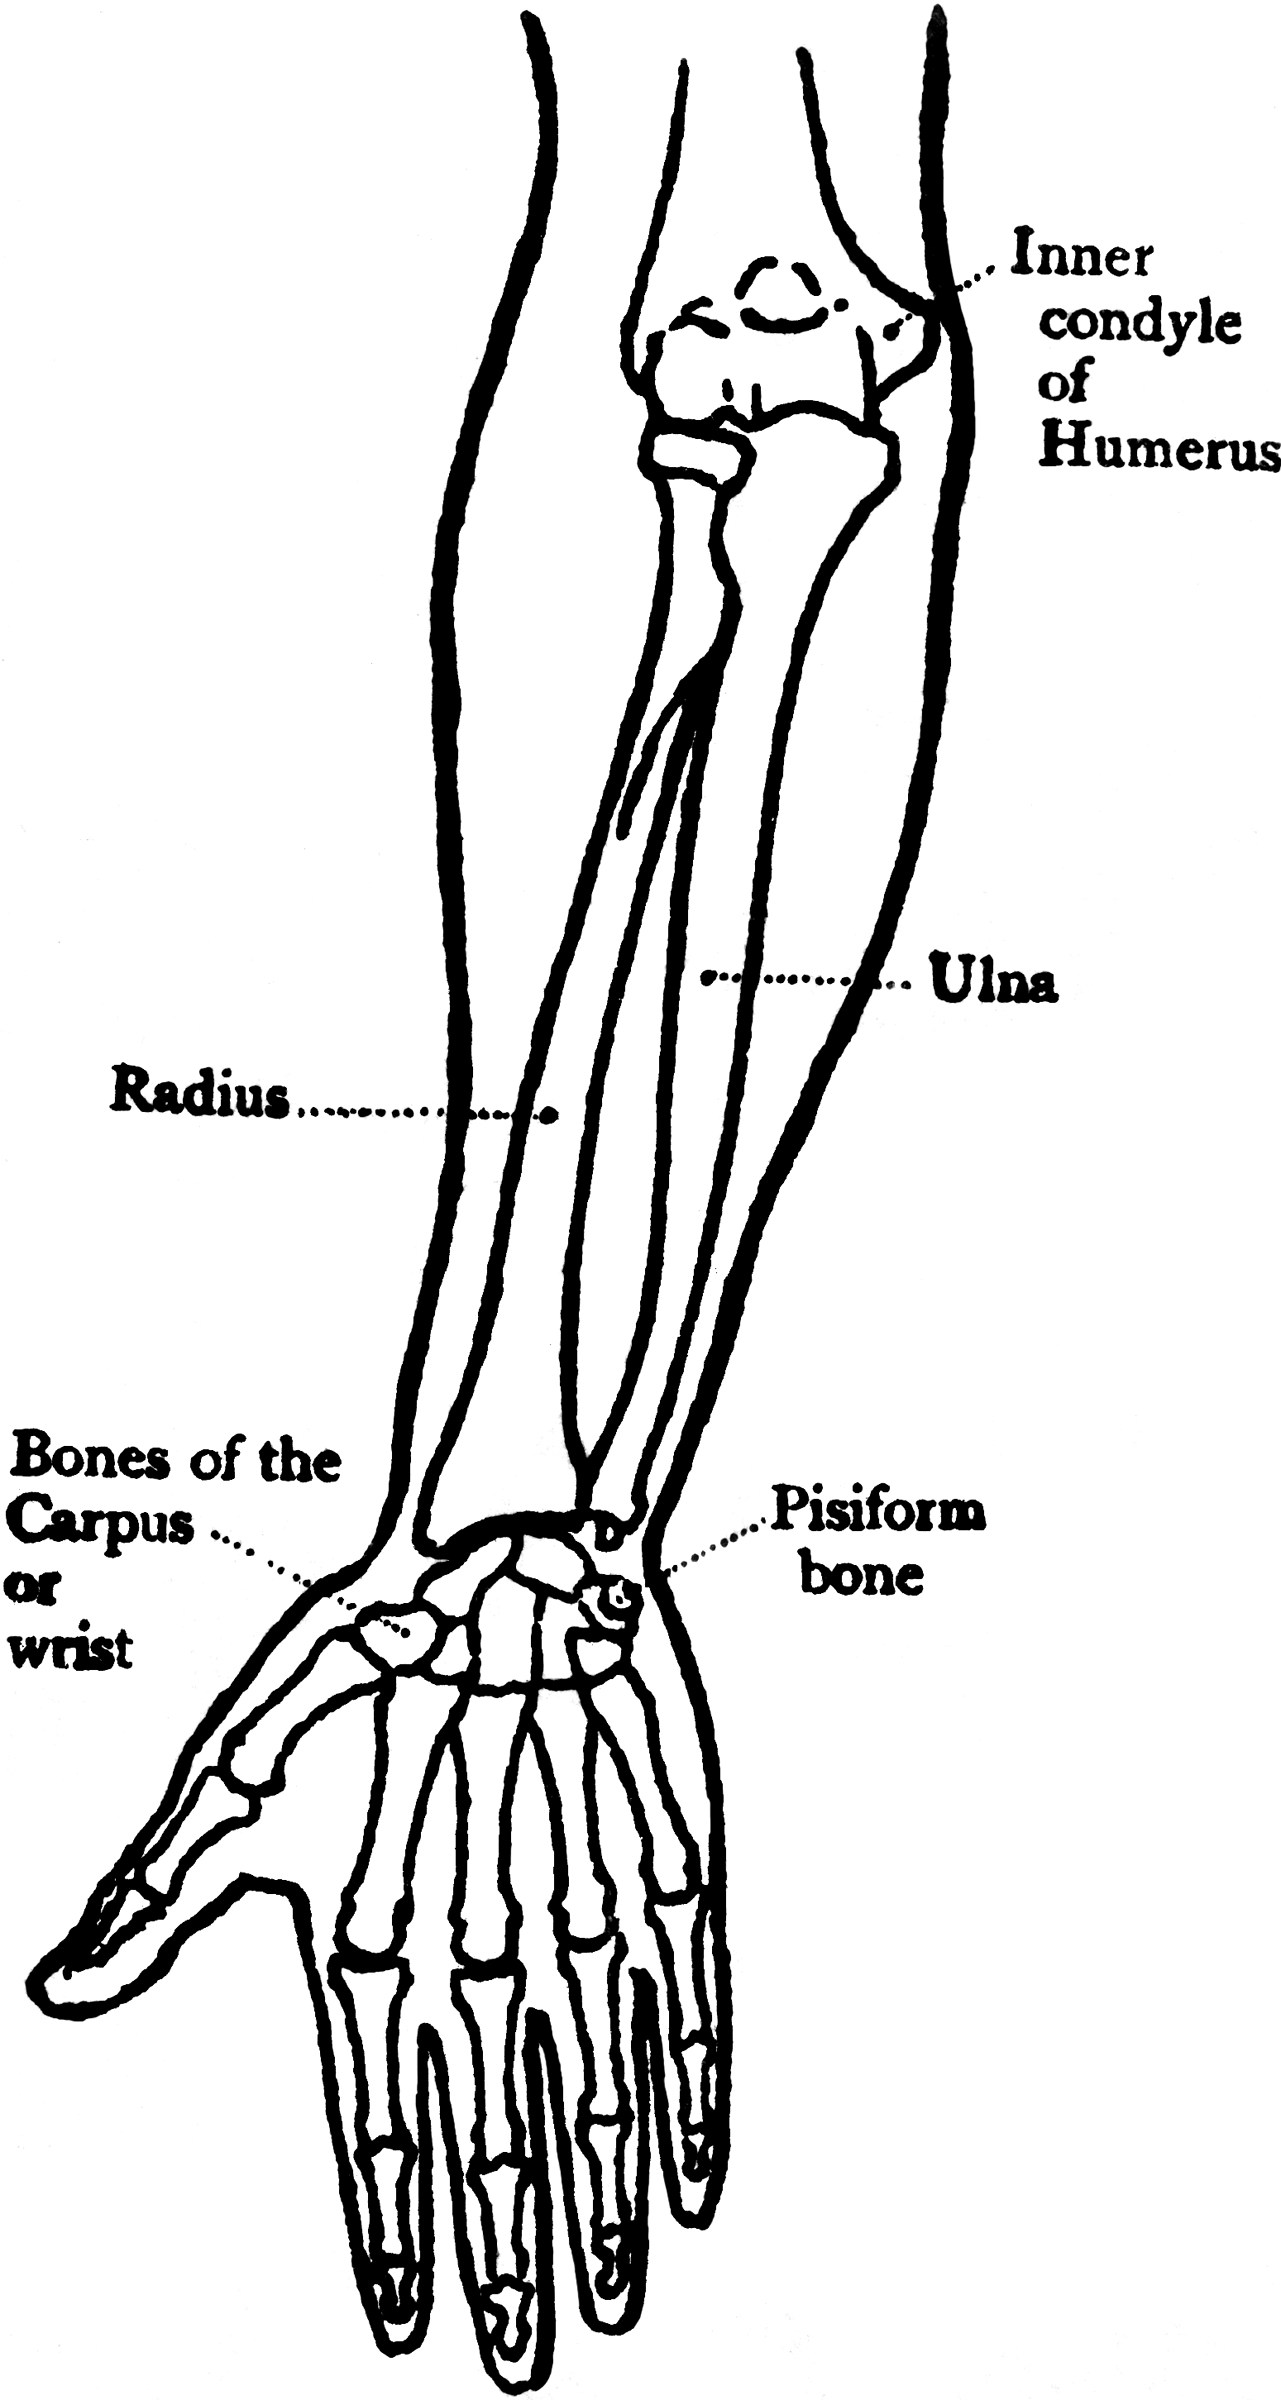 forearm bones diagram 1972 chevrolet truck wiring front view of the clipart etc